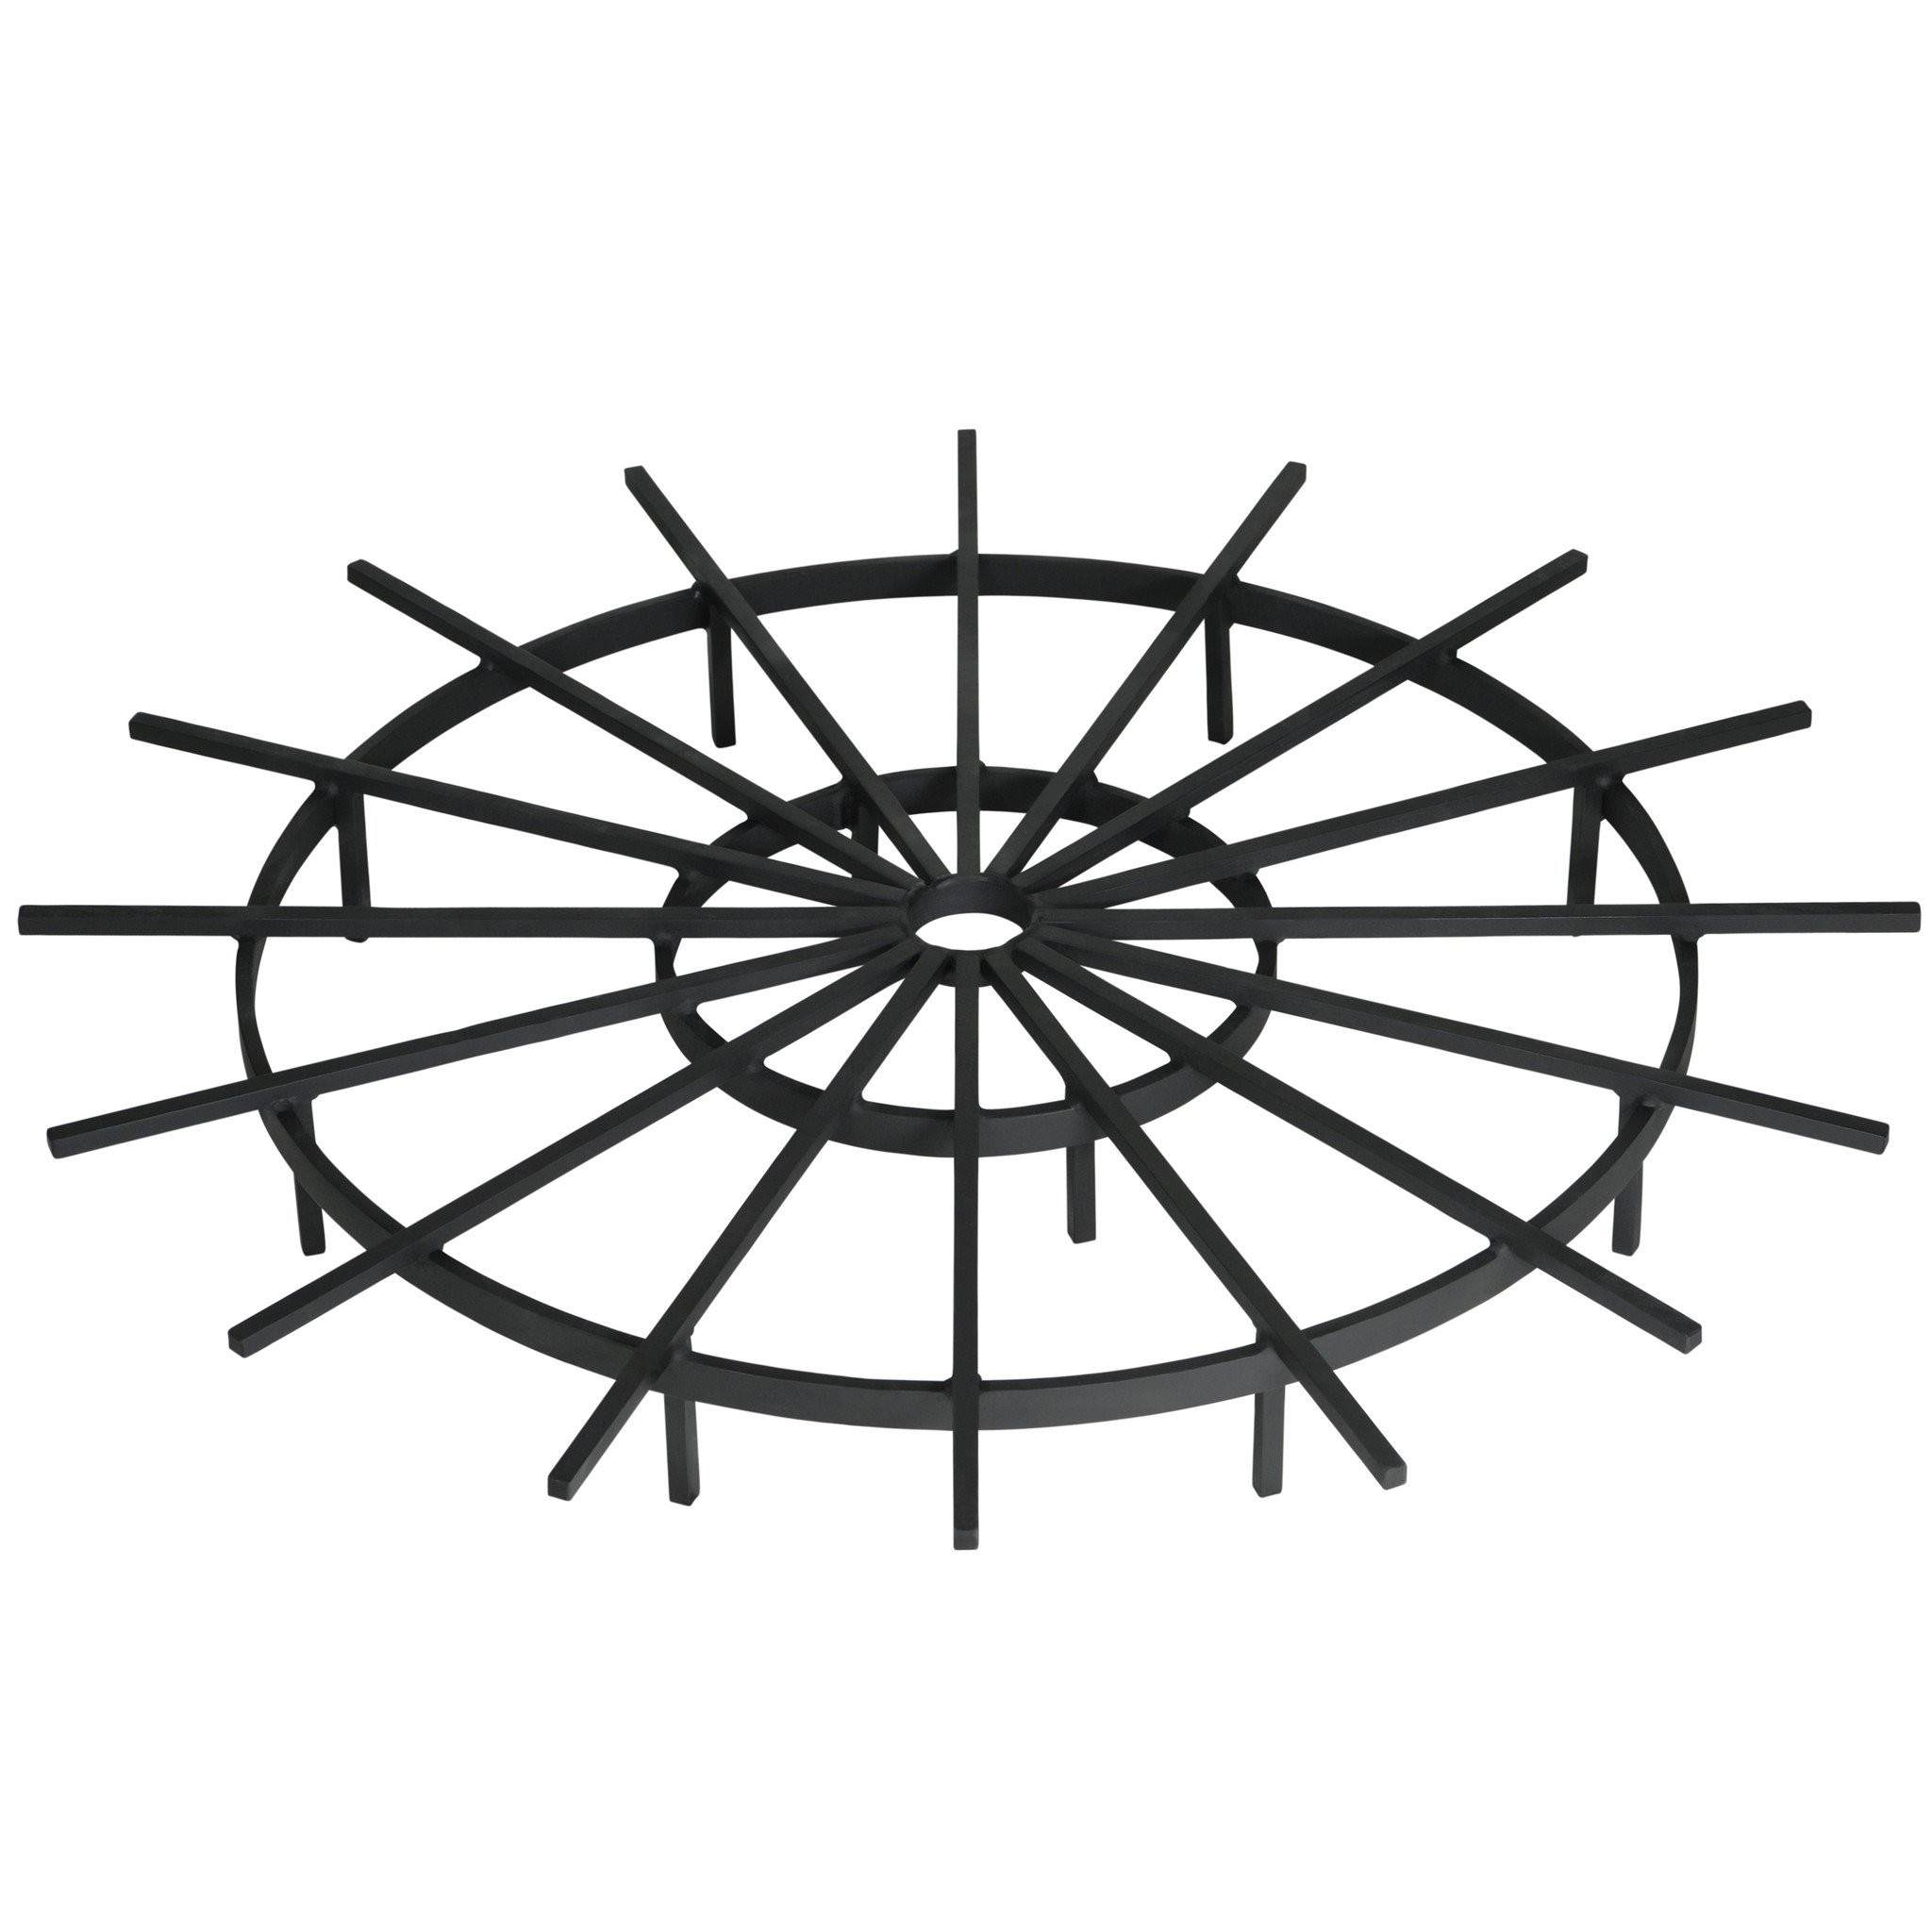 Heritage Products 36 Inch Ship's Wheel Fire Pit Grate - Made in the USA